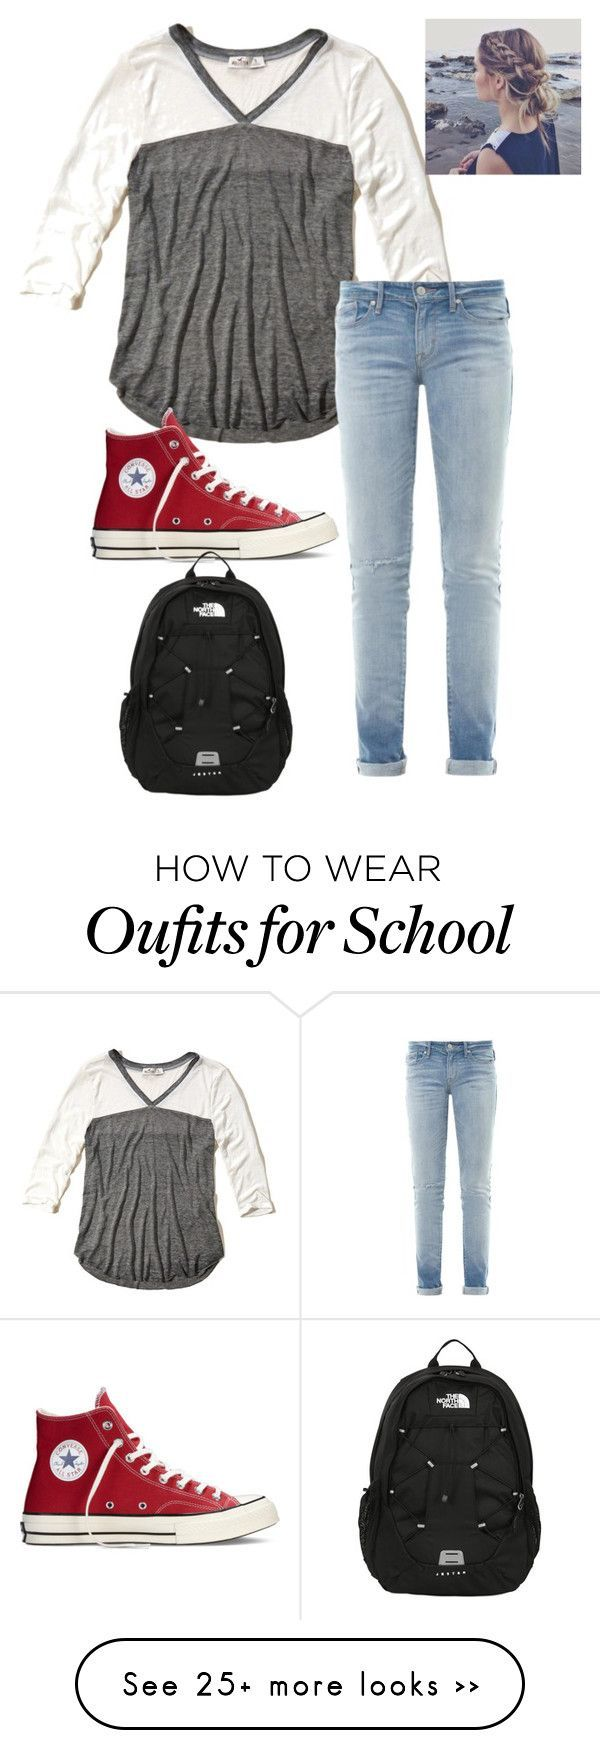 """School"" by tessperdue on Polyvore featuring Hollister Co., Marc by Marc Jacobs, Converse and The North Face"